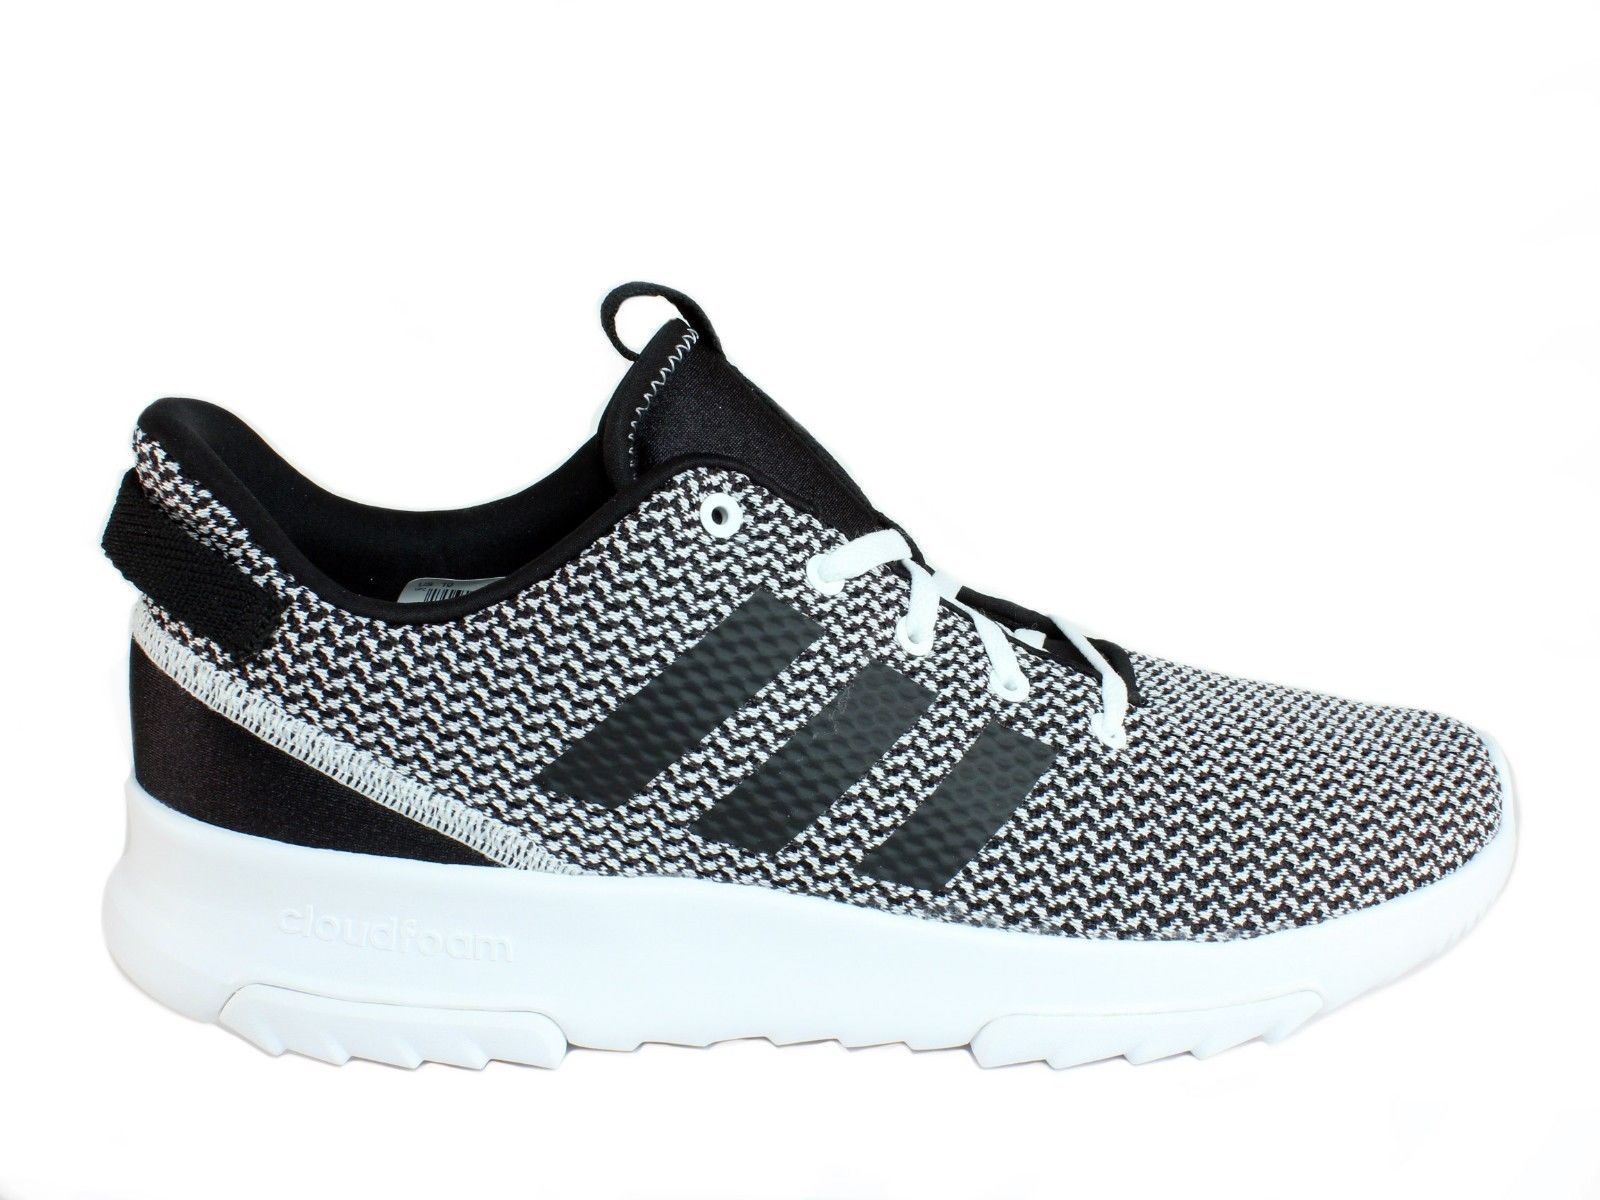 86ad938b9312 Adidas CF RACER TR Men s Athletic Trail Running Shoes Sneakers Black White